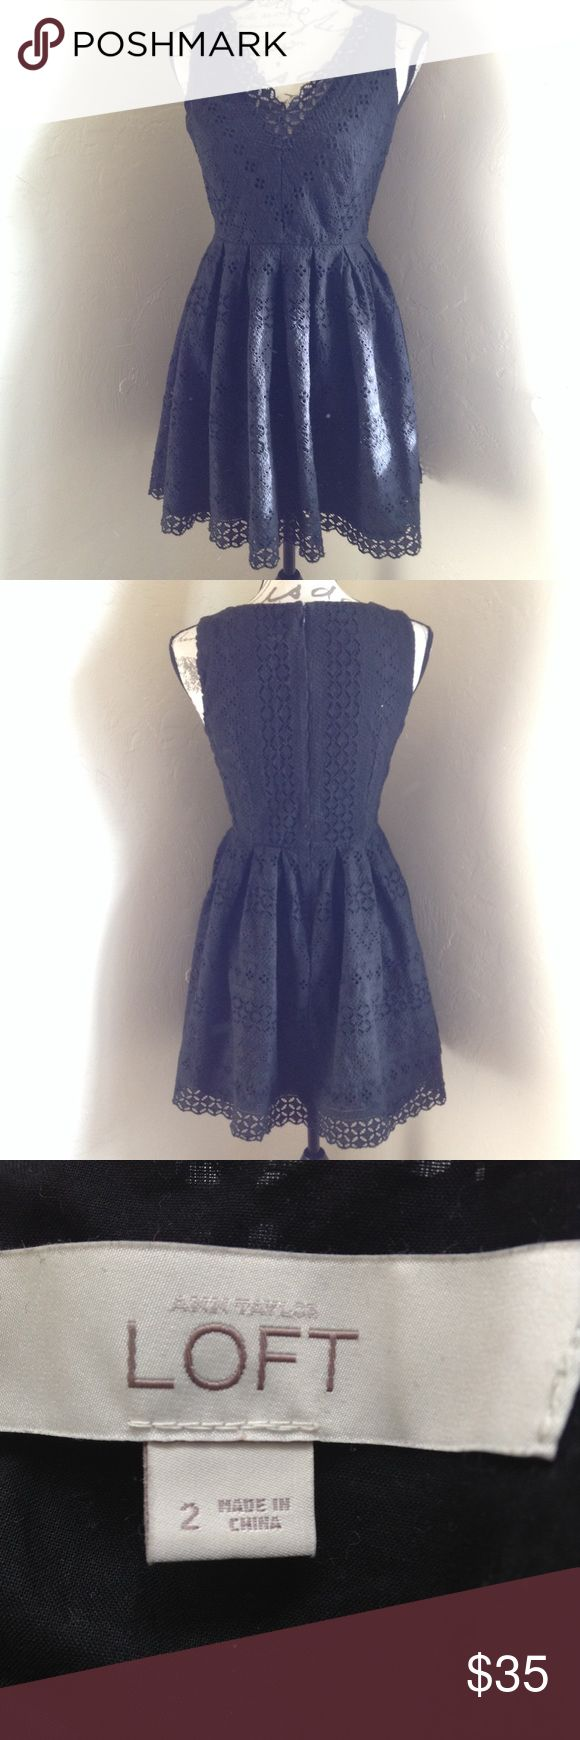 Black Ann Taylor LOFT Dress Size 2 dress made with 100% cotton. In great used condition!  Black crochet/lace fabric. LOFT Dresses